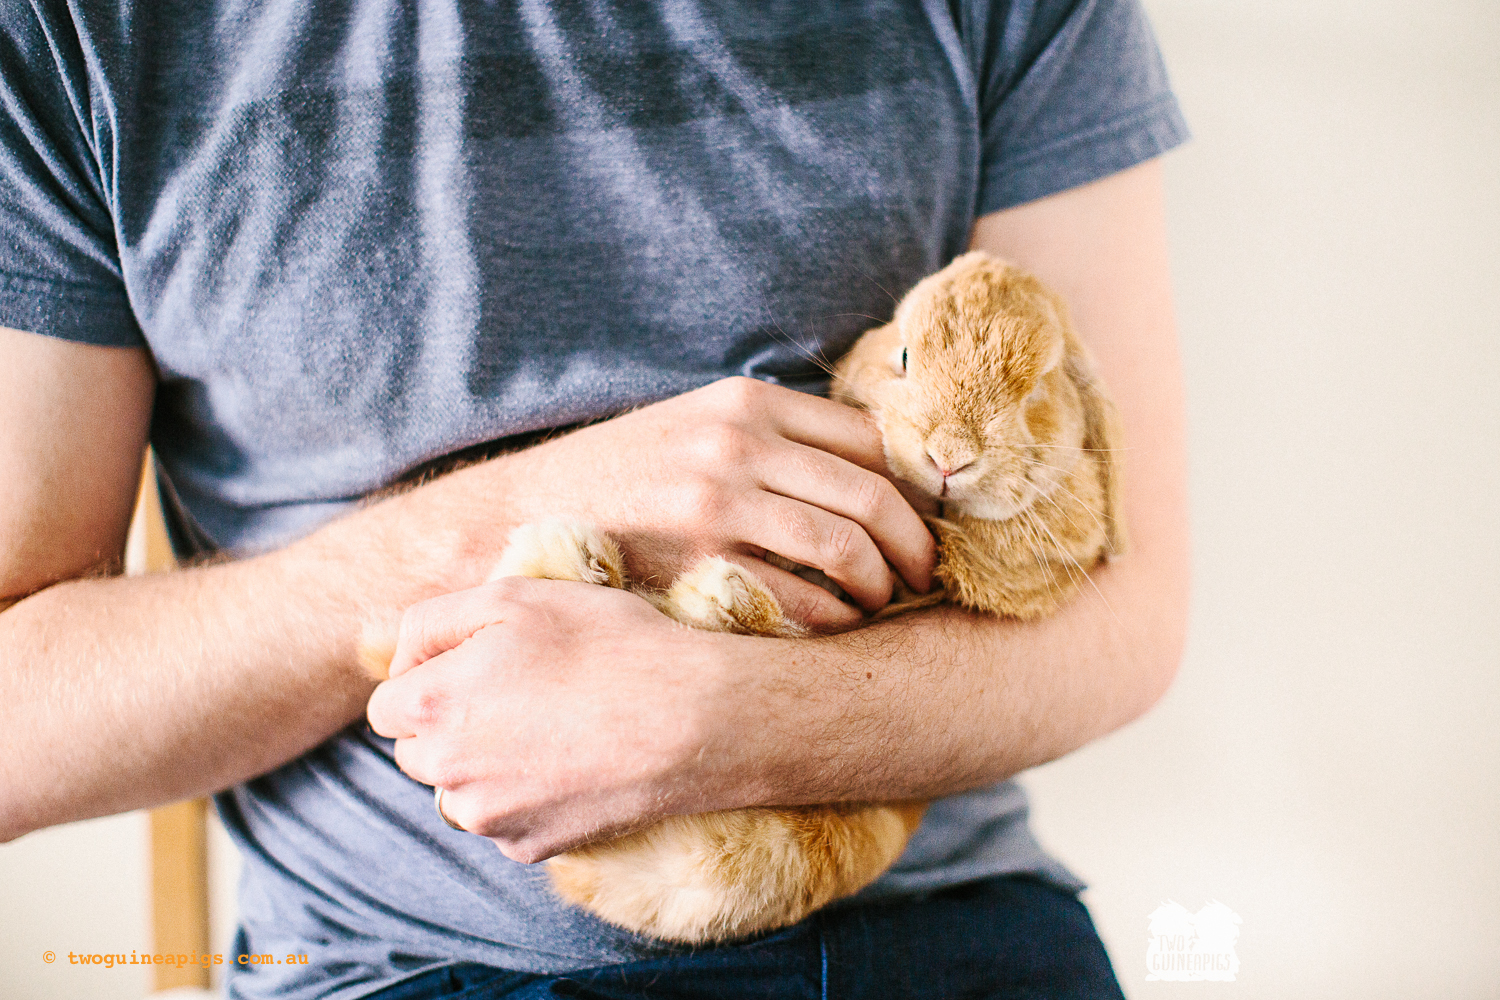 twoguineapigs_pet_photography_waffles_lop_eared_bunny_1500-2.jpg